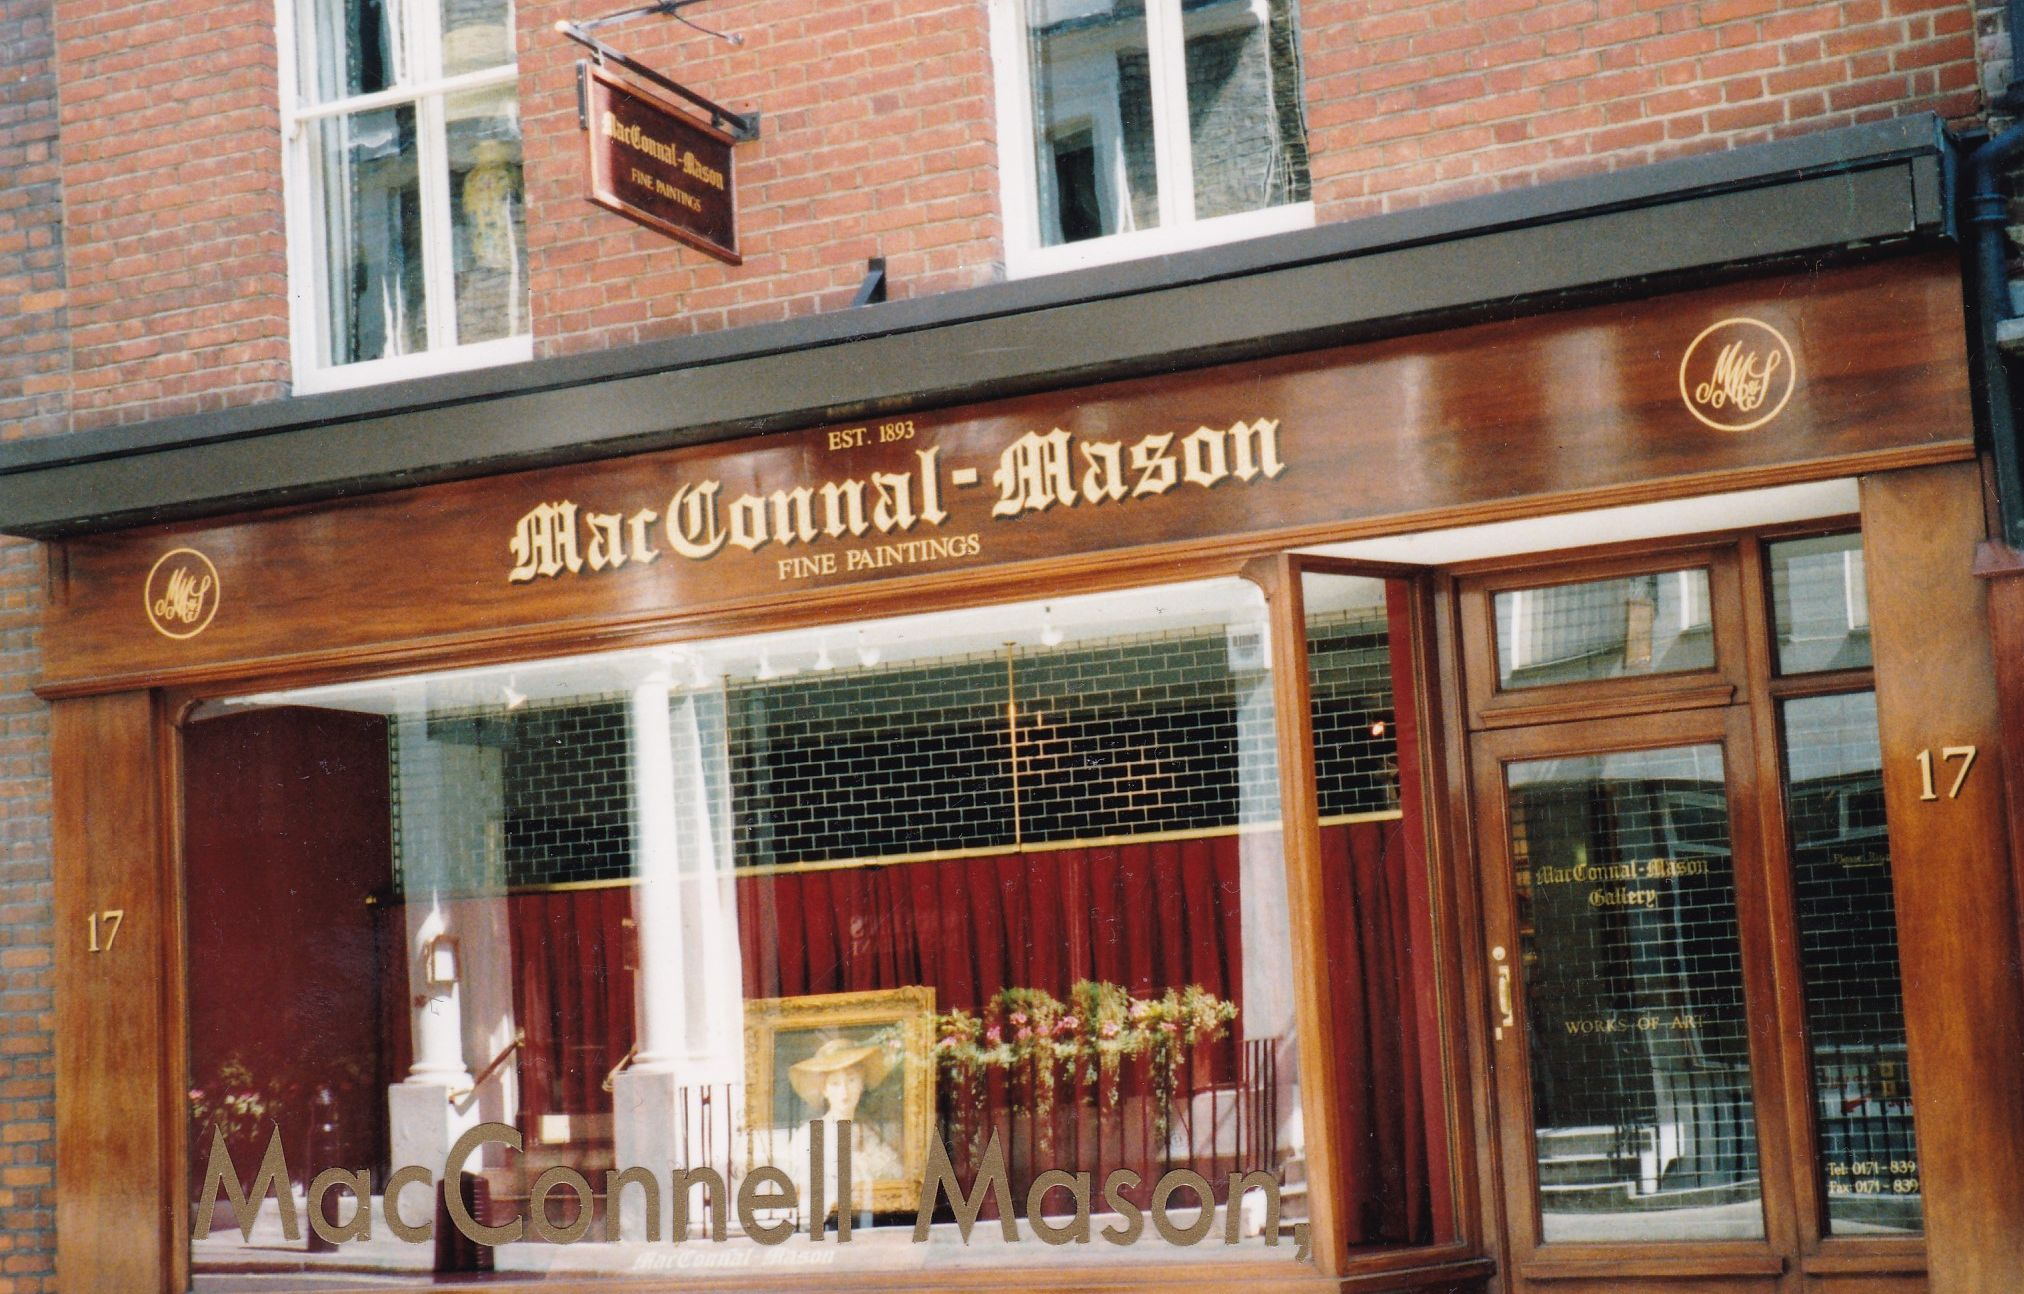 McConnel Mason Art Gallery, Duke Street, St. James's, London 1999